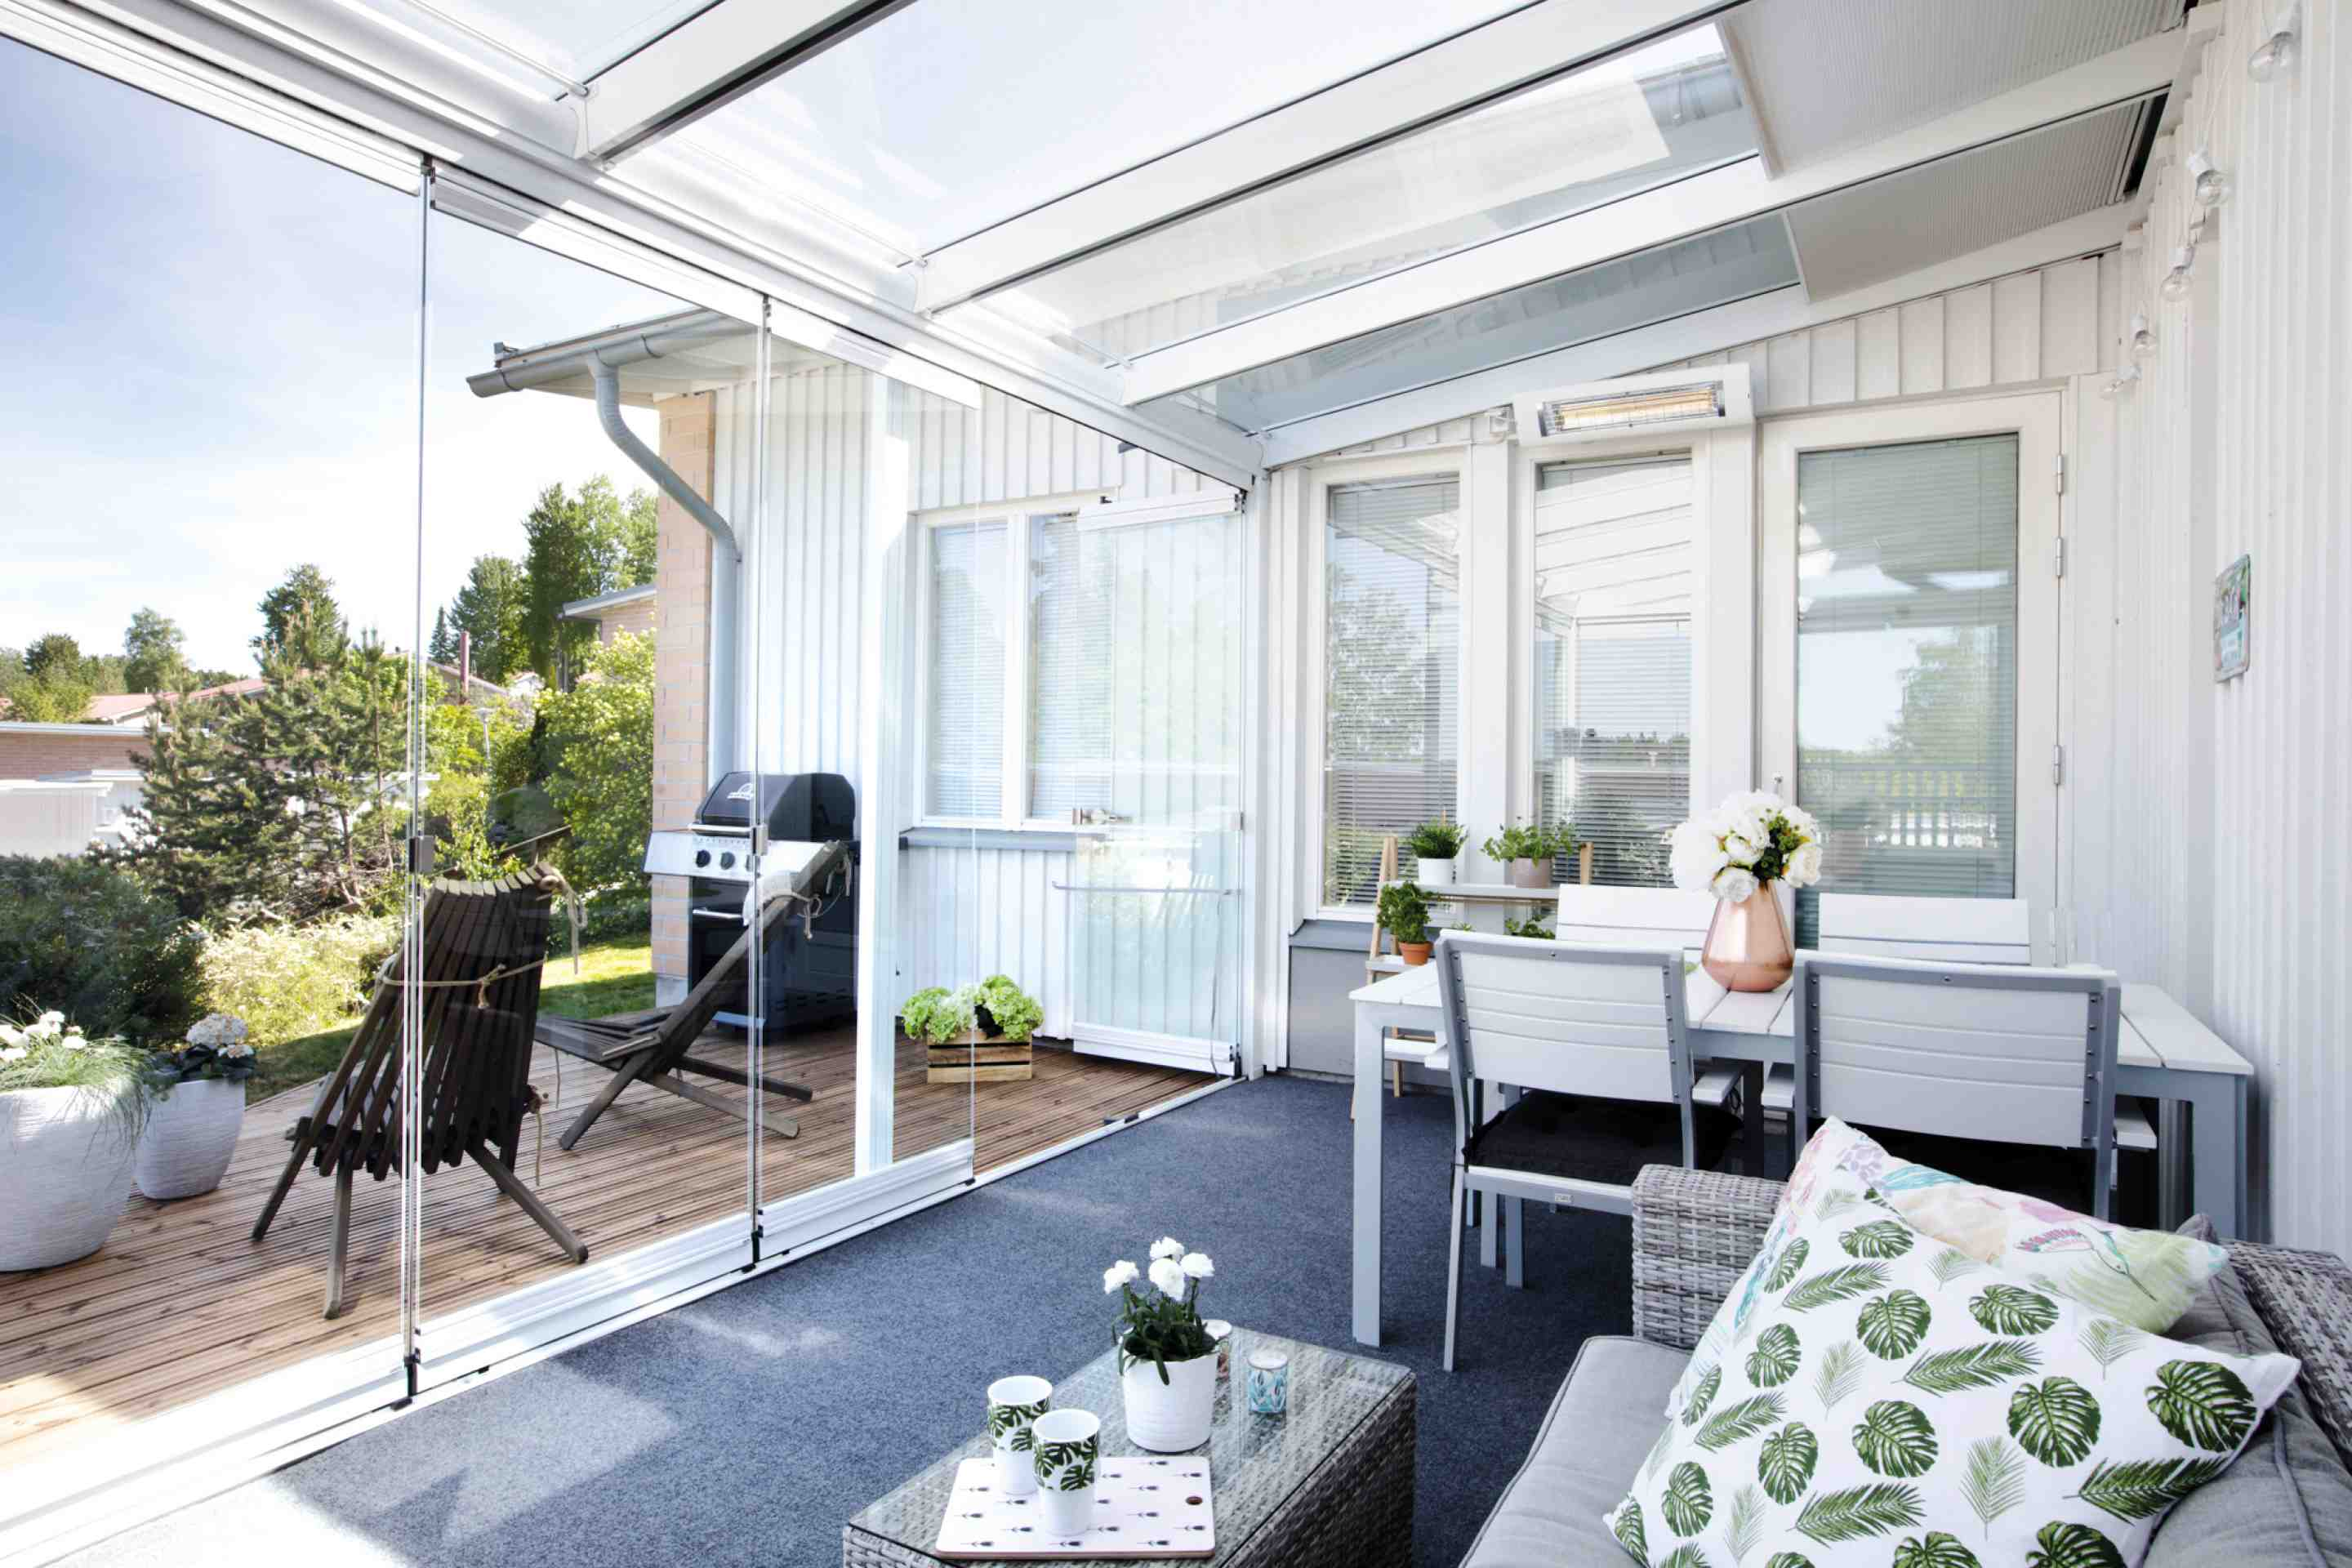 sunroom, sunroom images, sunroom options, sunroom walls, sunroom additions in canada, three season sunroom